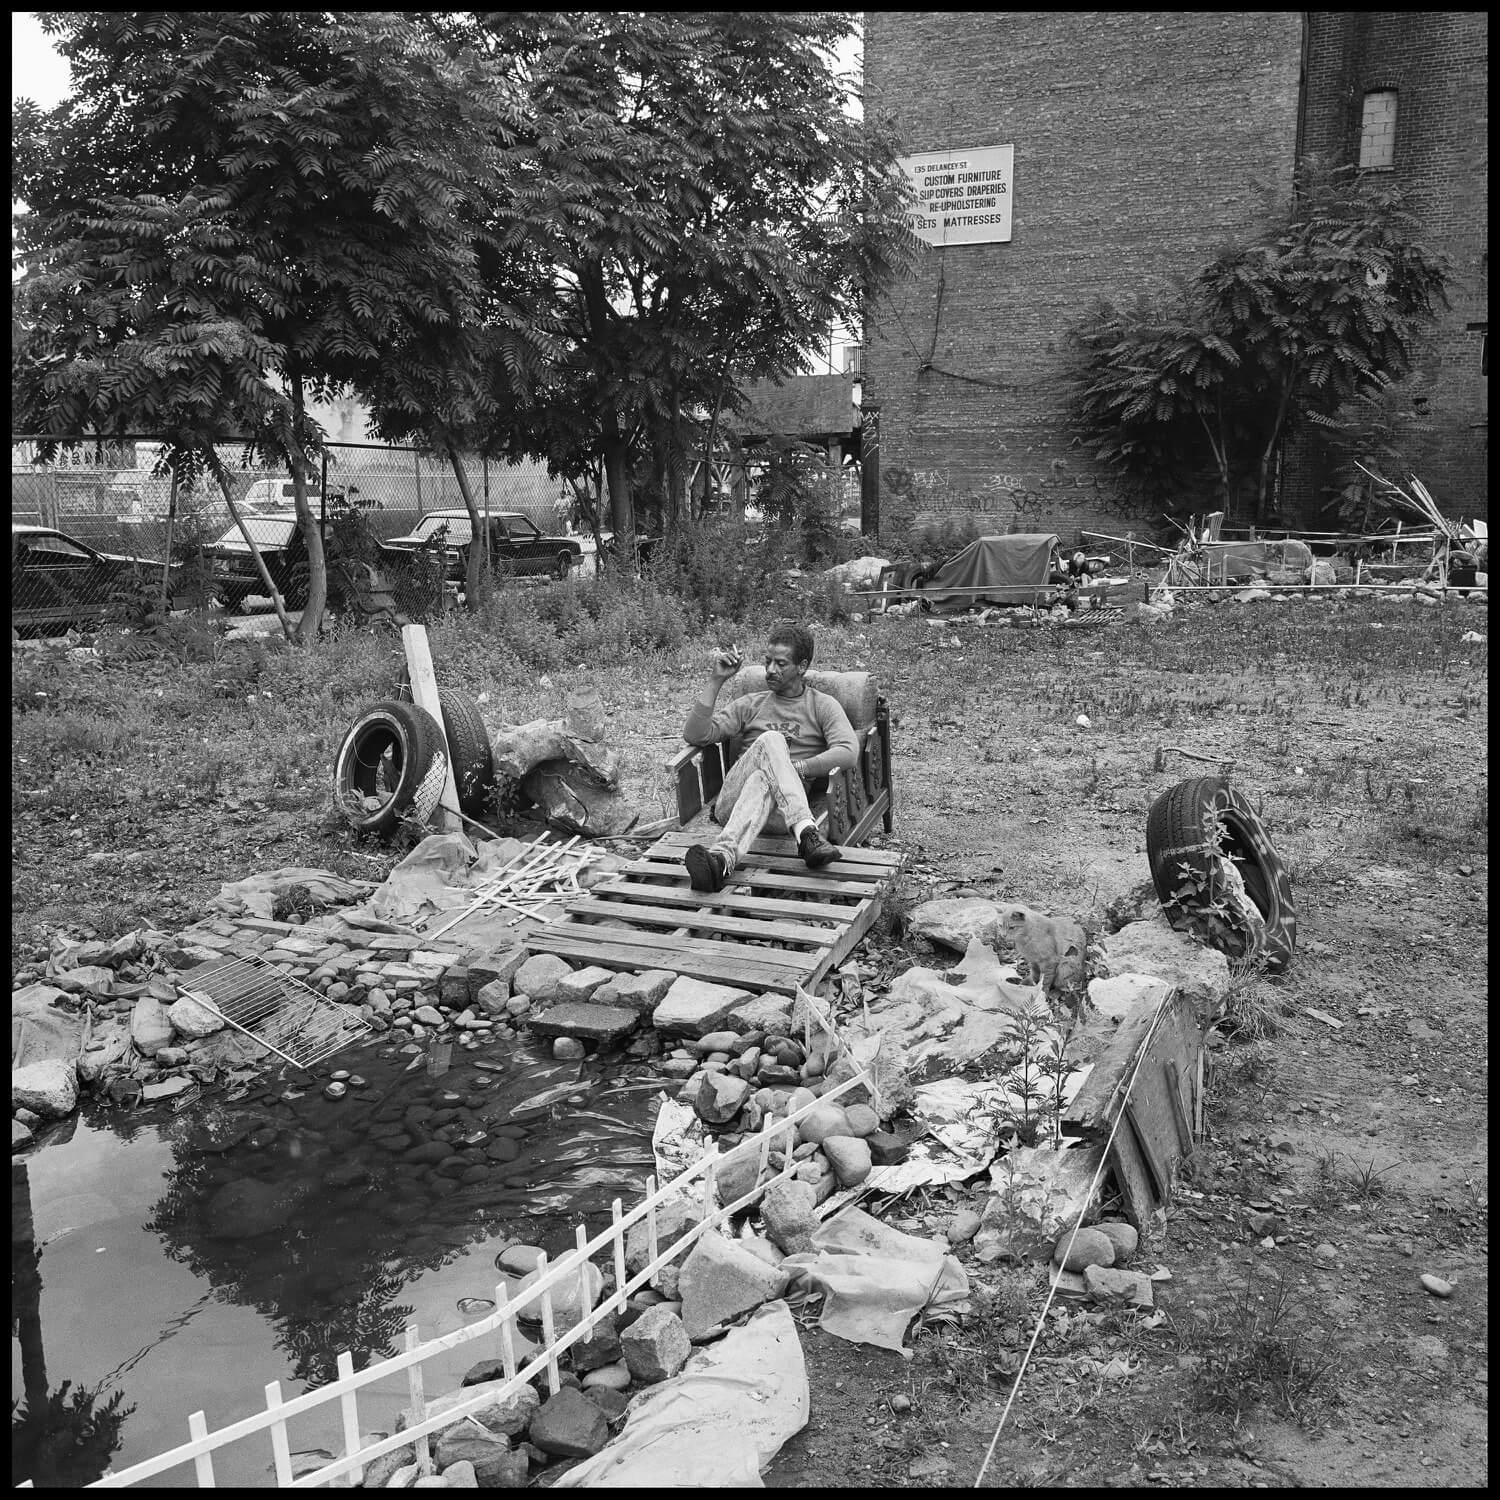 Photo of homeless residents of a garden